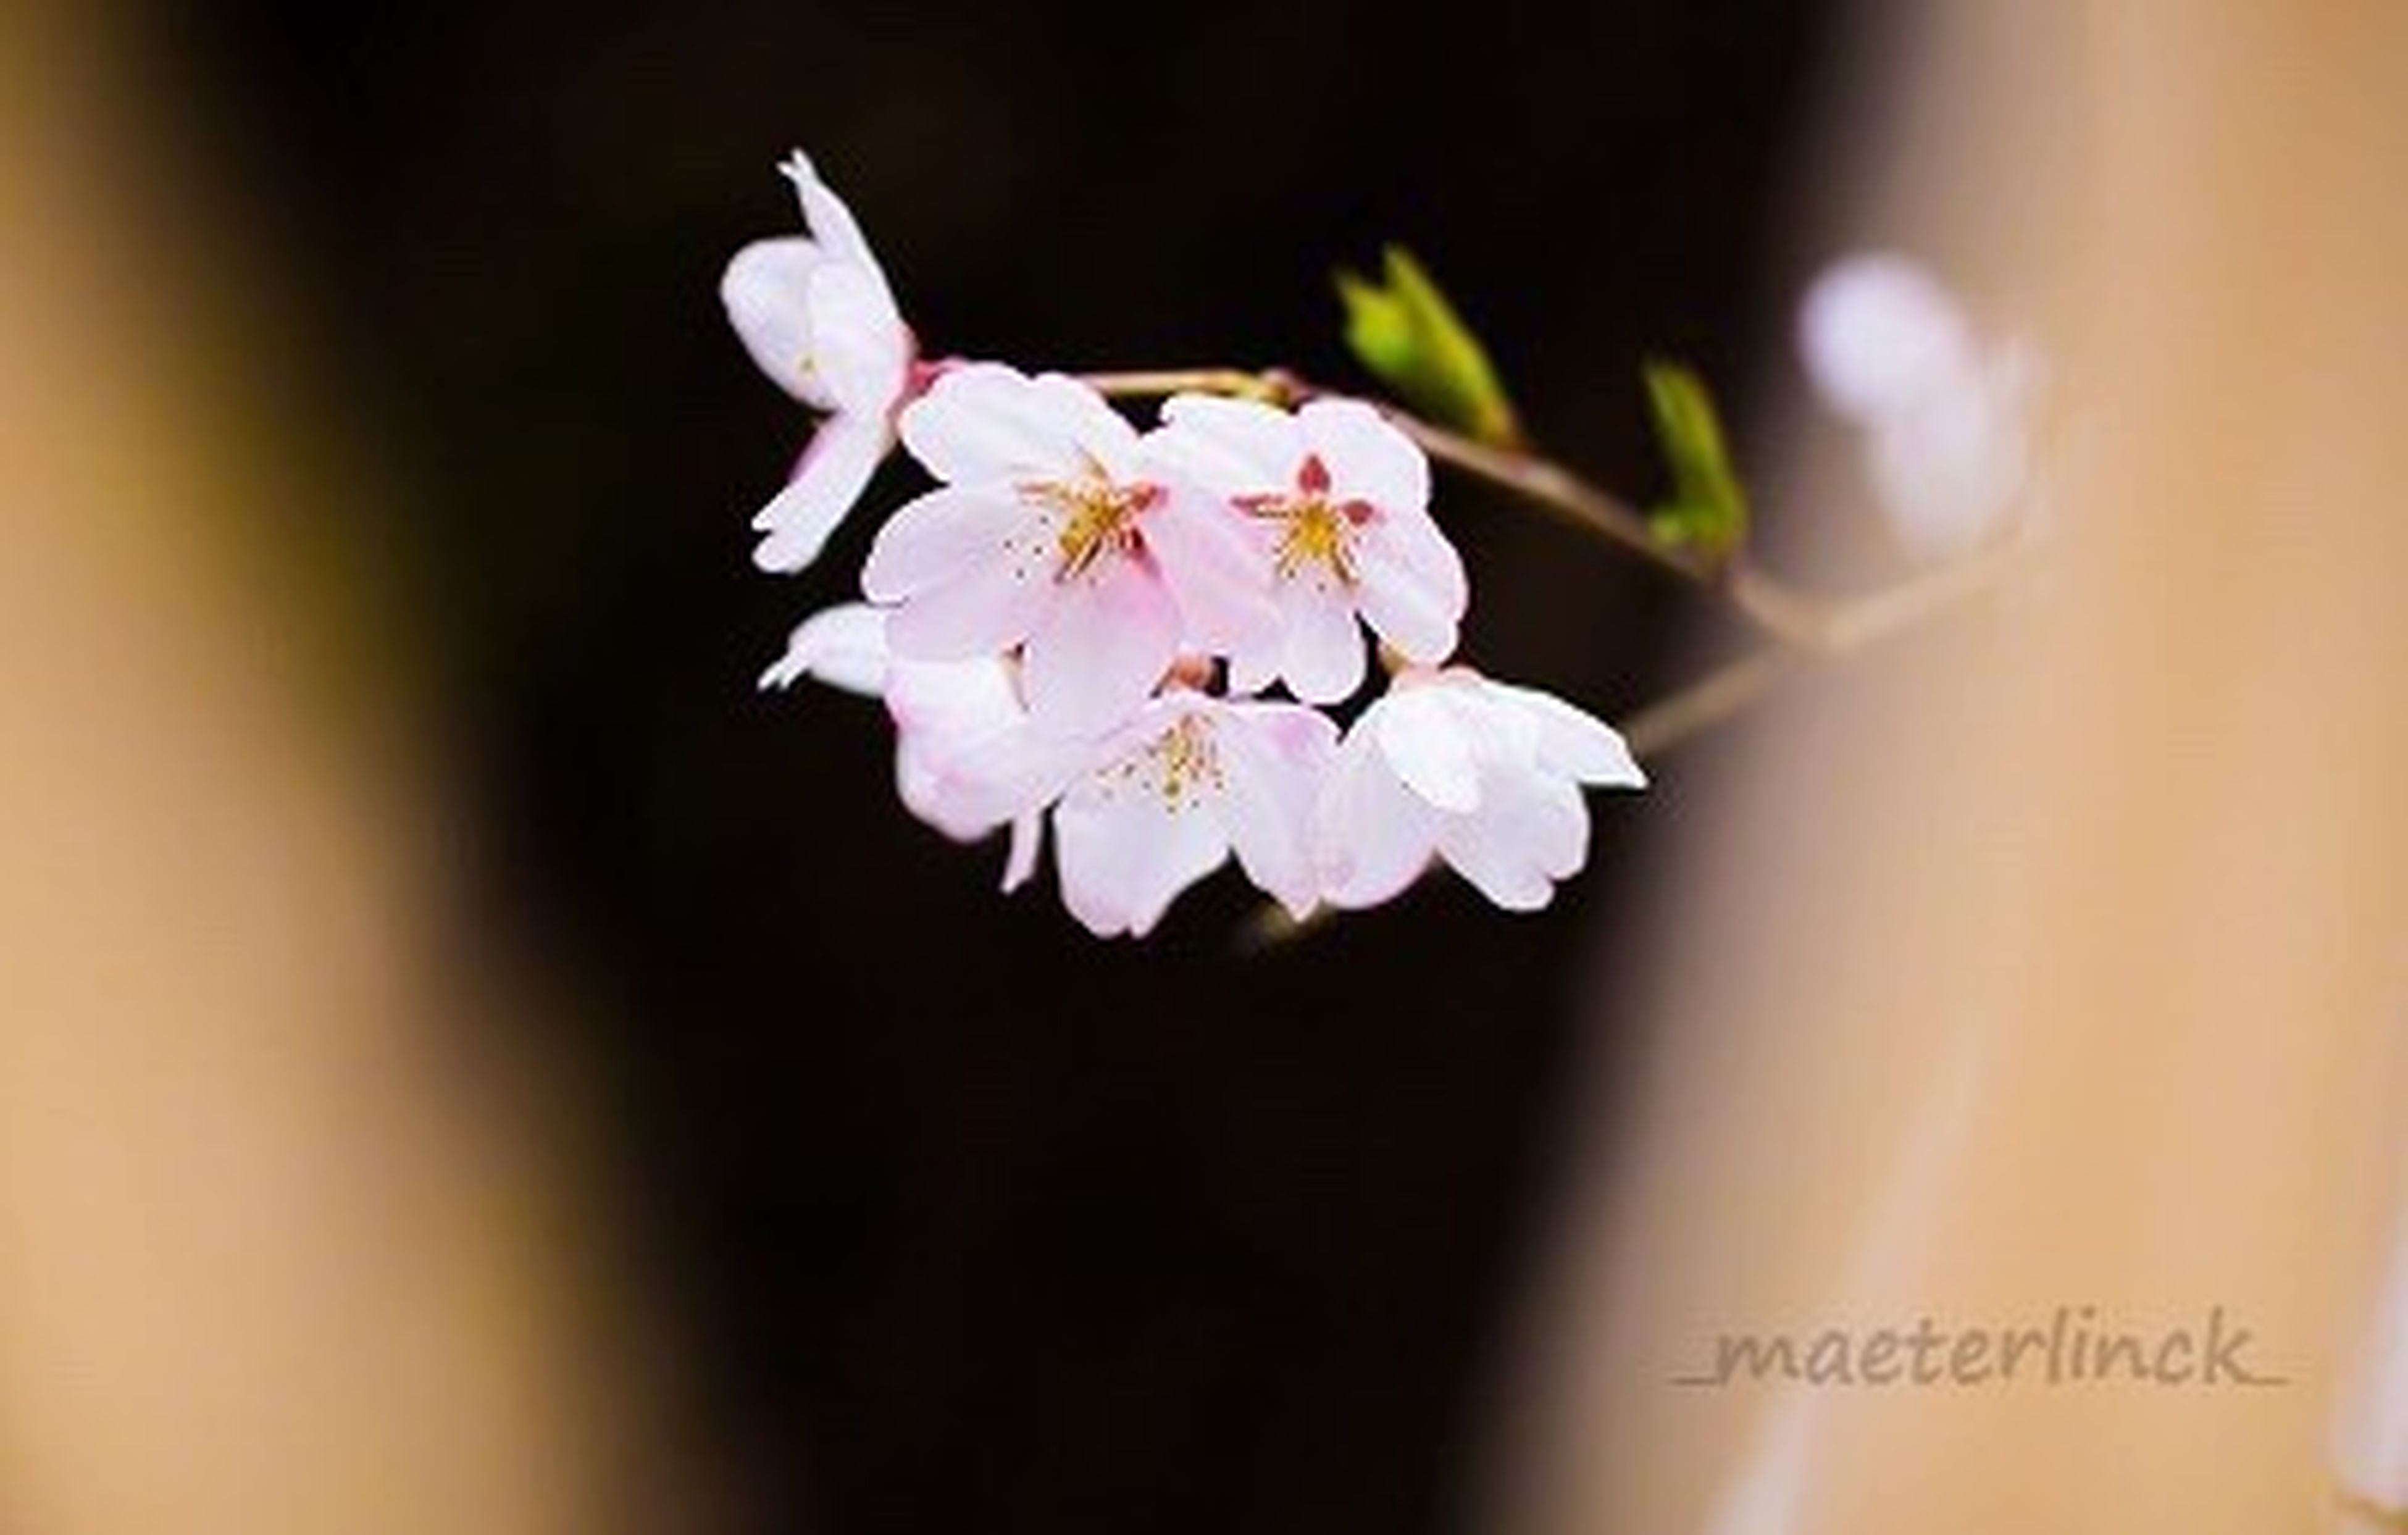 flower, petal, freshness, fragility, flower head, growth, beauty in nature, close-up, nature, stamen, blooming, focus on foreground, white color, blossom, stem, in bloom, pollen, selective focus, plant, springtime